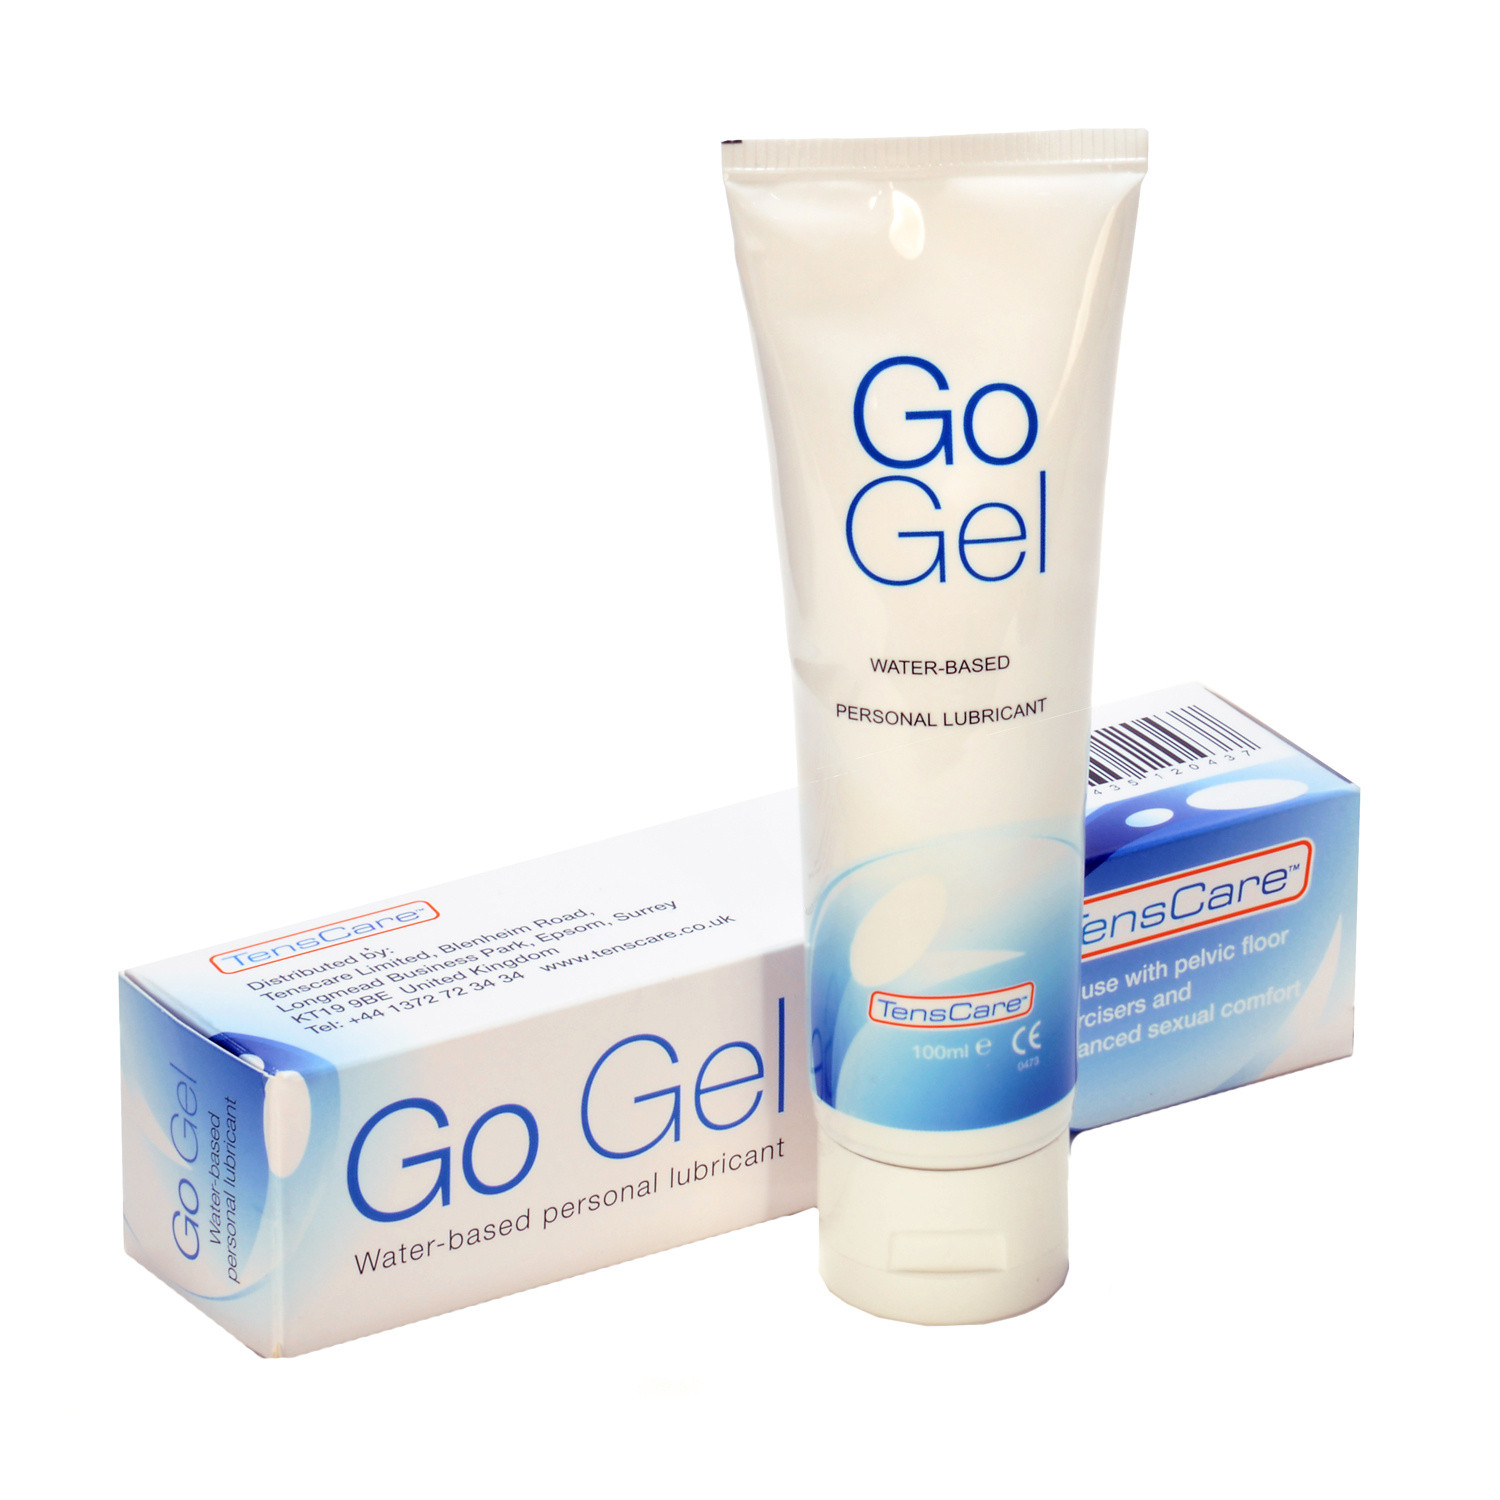 TensCare Go Gel Water based lubricant for use with Pelvic Floor Exercisers